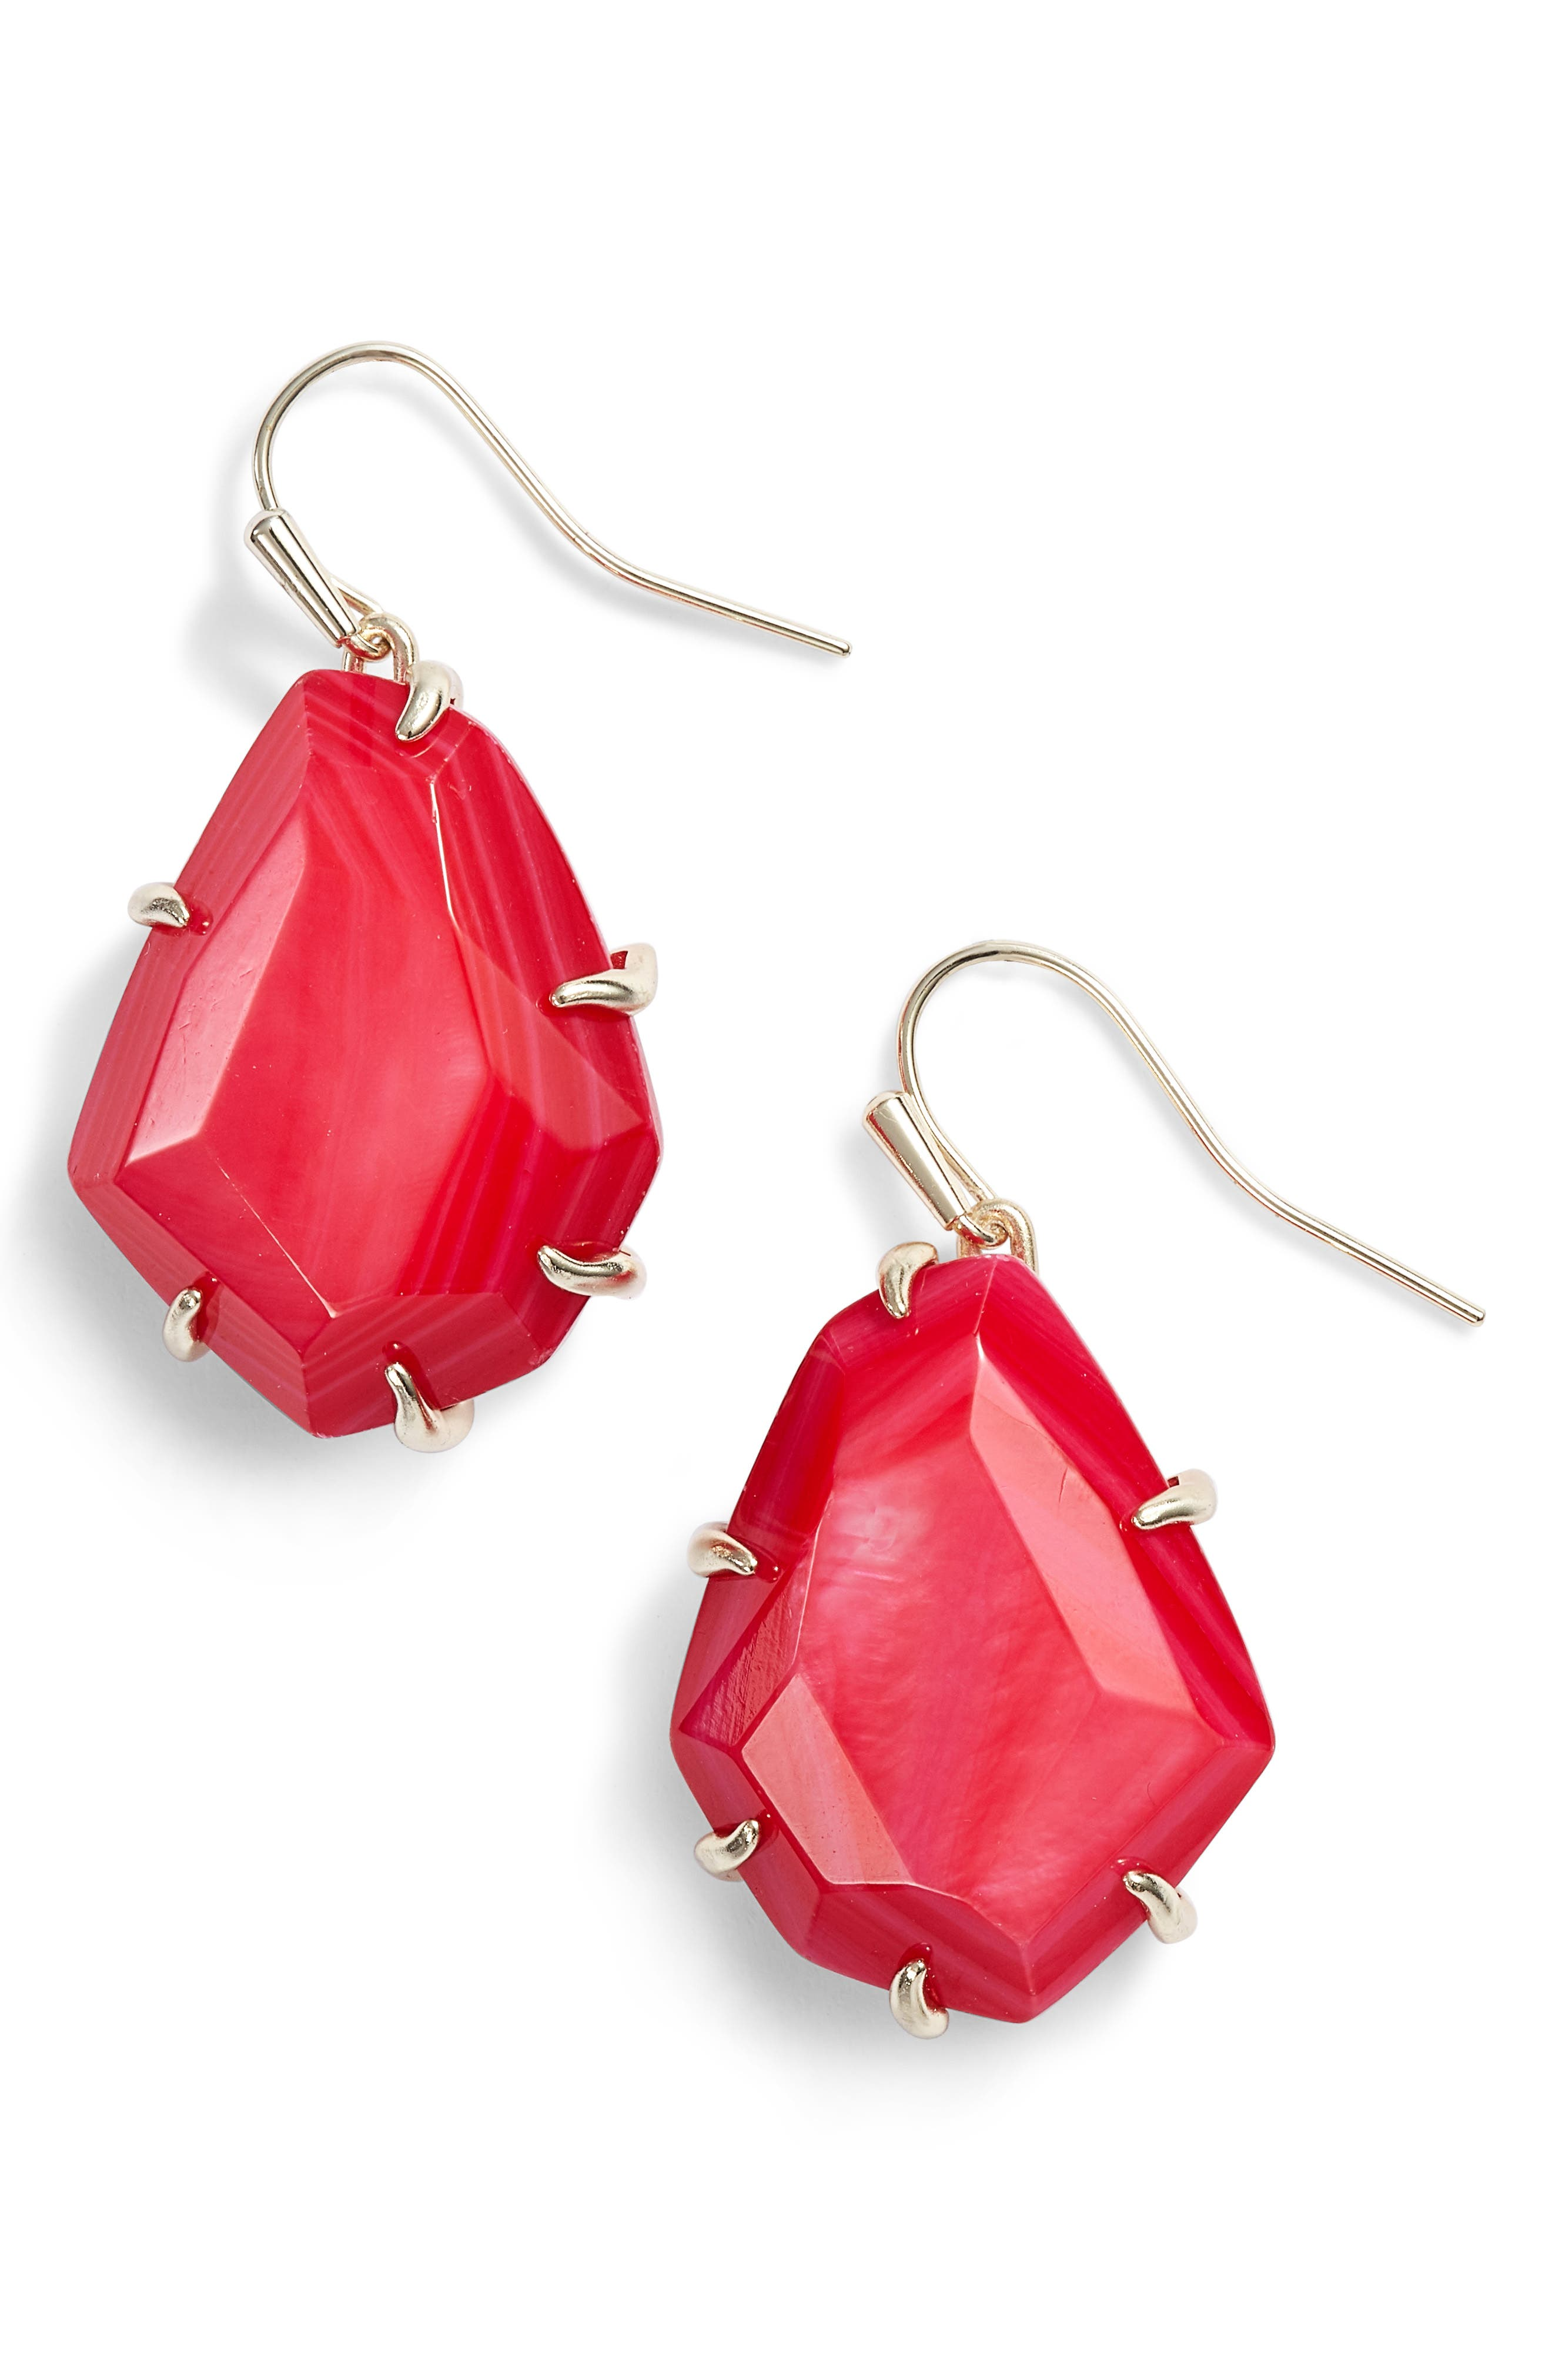 Rosenell Stone Earrings,                             Main thumbnail 1, color,                             Red Mop/ Gold